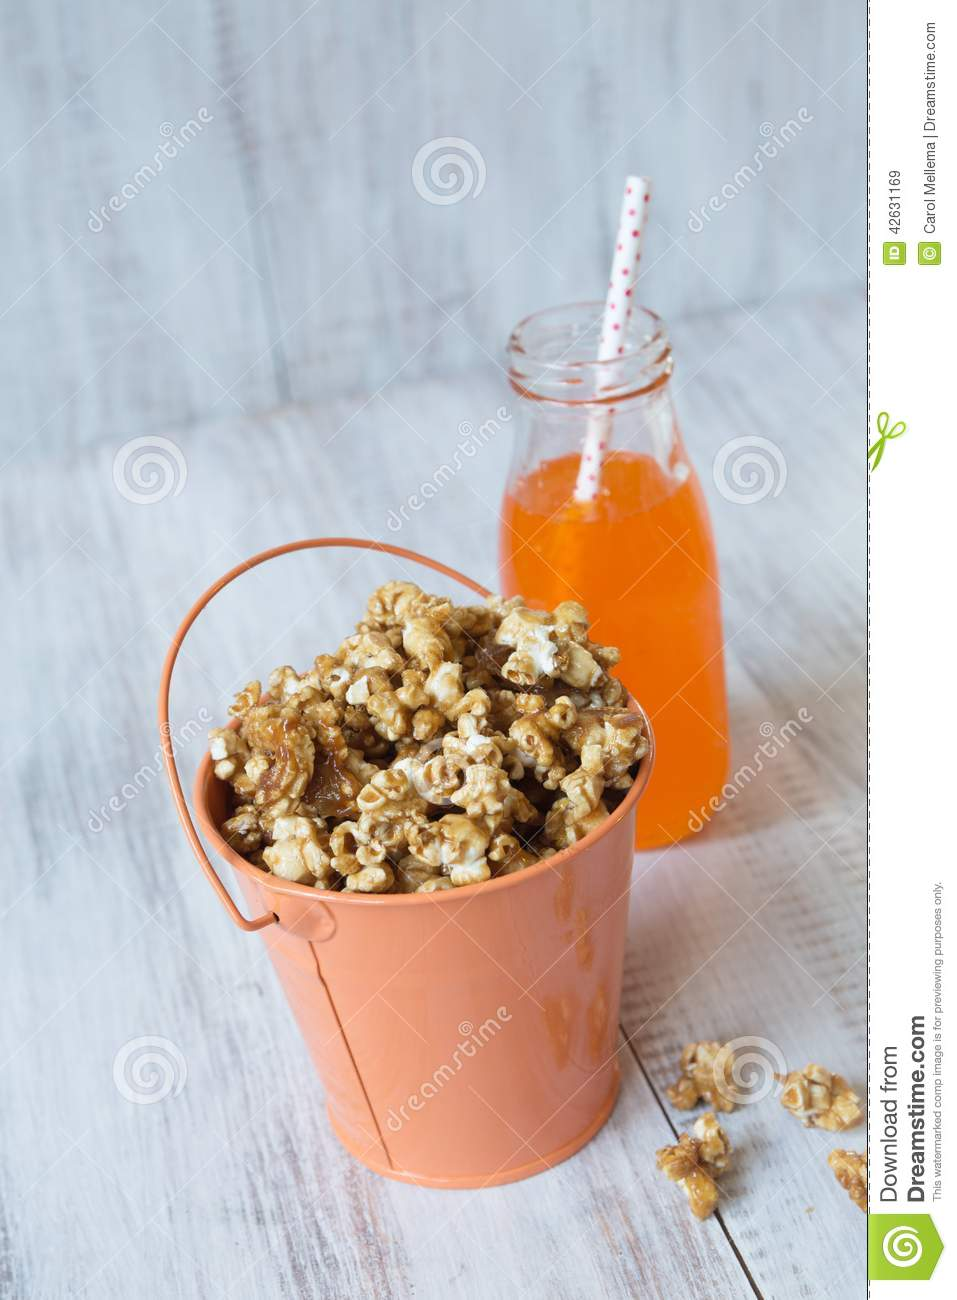 Maïs éclaté de caramel en casse-croûte de bruit de Tin Bucket With Orange Soda